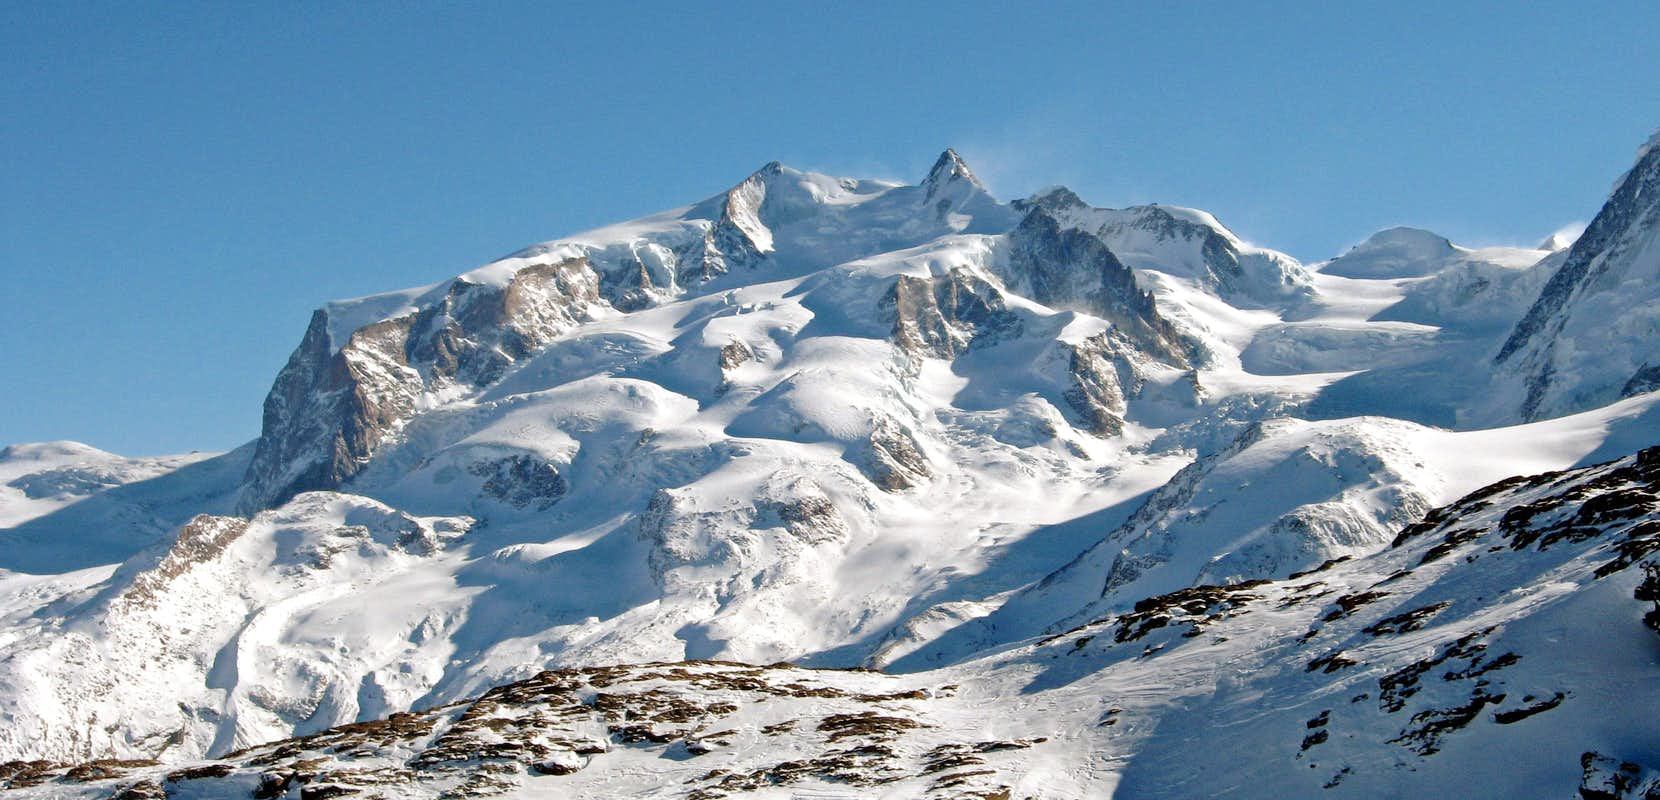 The Monte Rosa group in winter